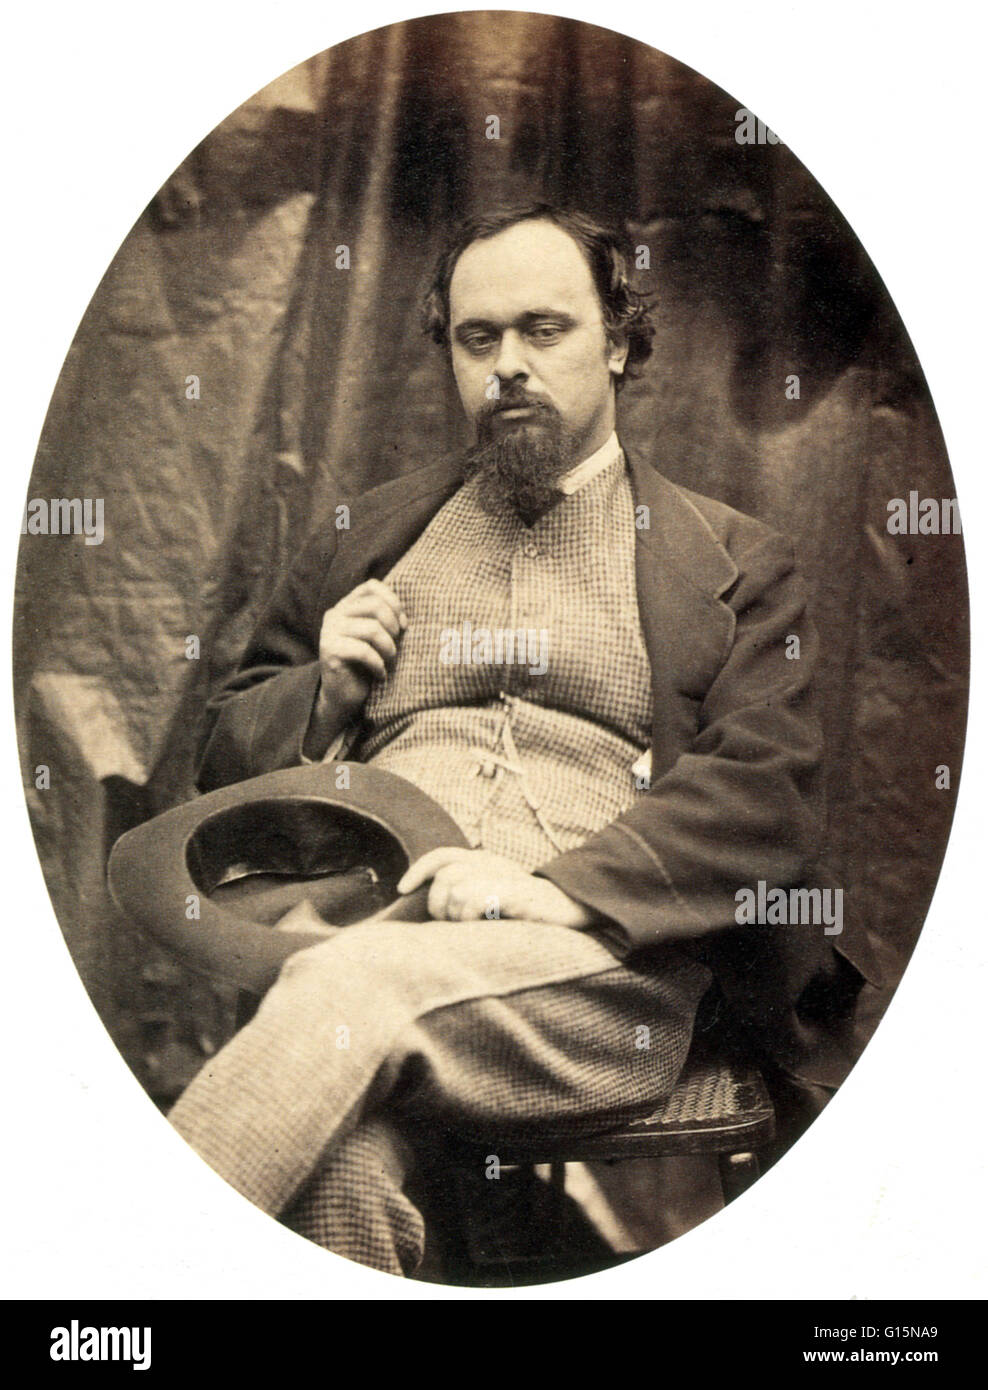 Dante Gabriel Rossetti (May 12, 1828 - April 9, 1882) was an English poet, illustrator, painter and translator. - Stock Image